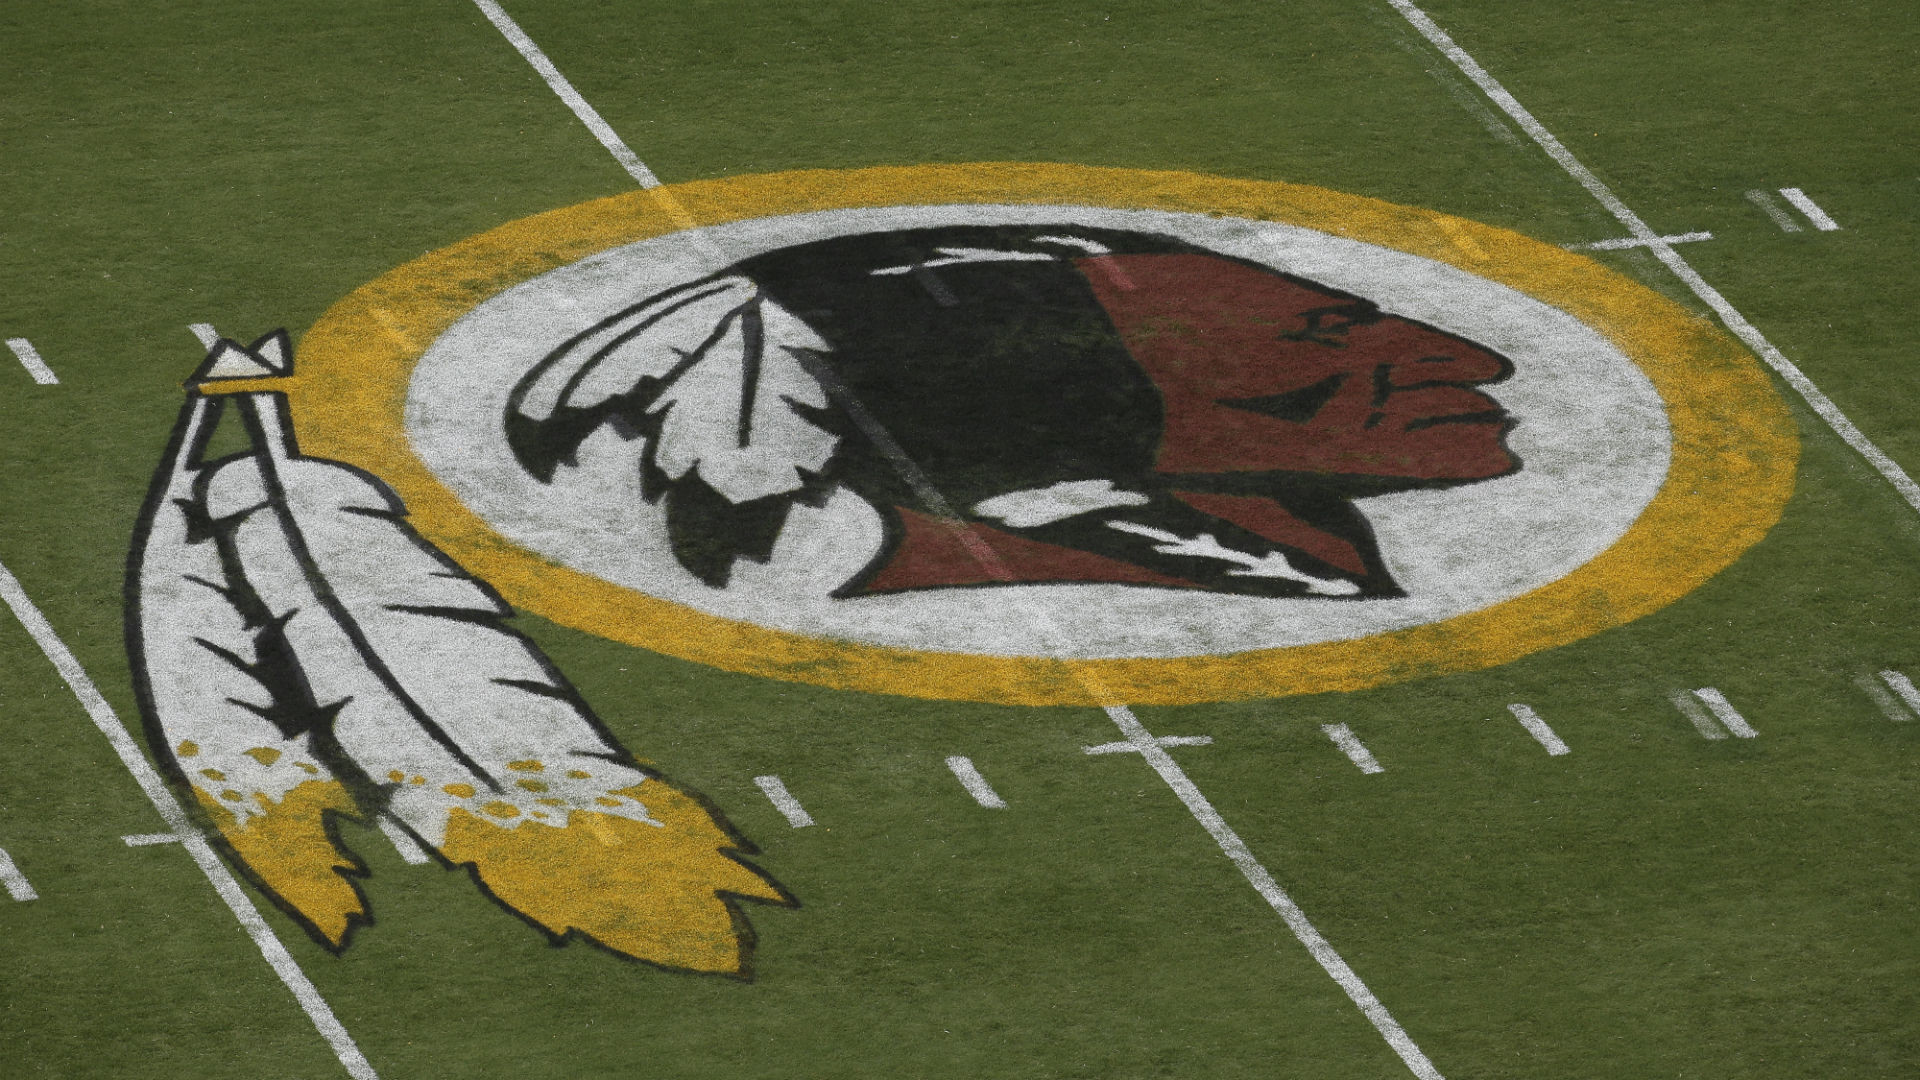 Etsy won't sell merchandise containing 'Redskins'   NFL   Sporting News